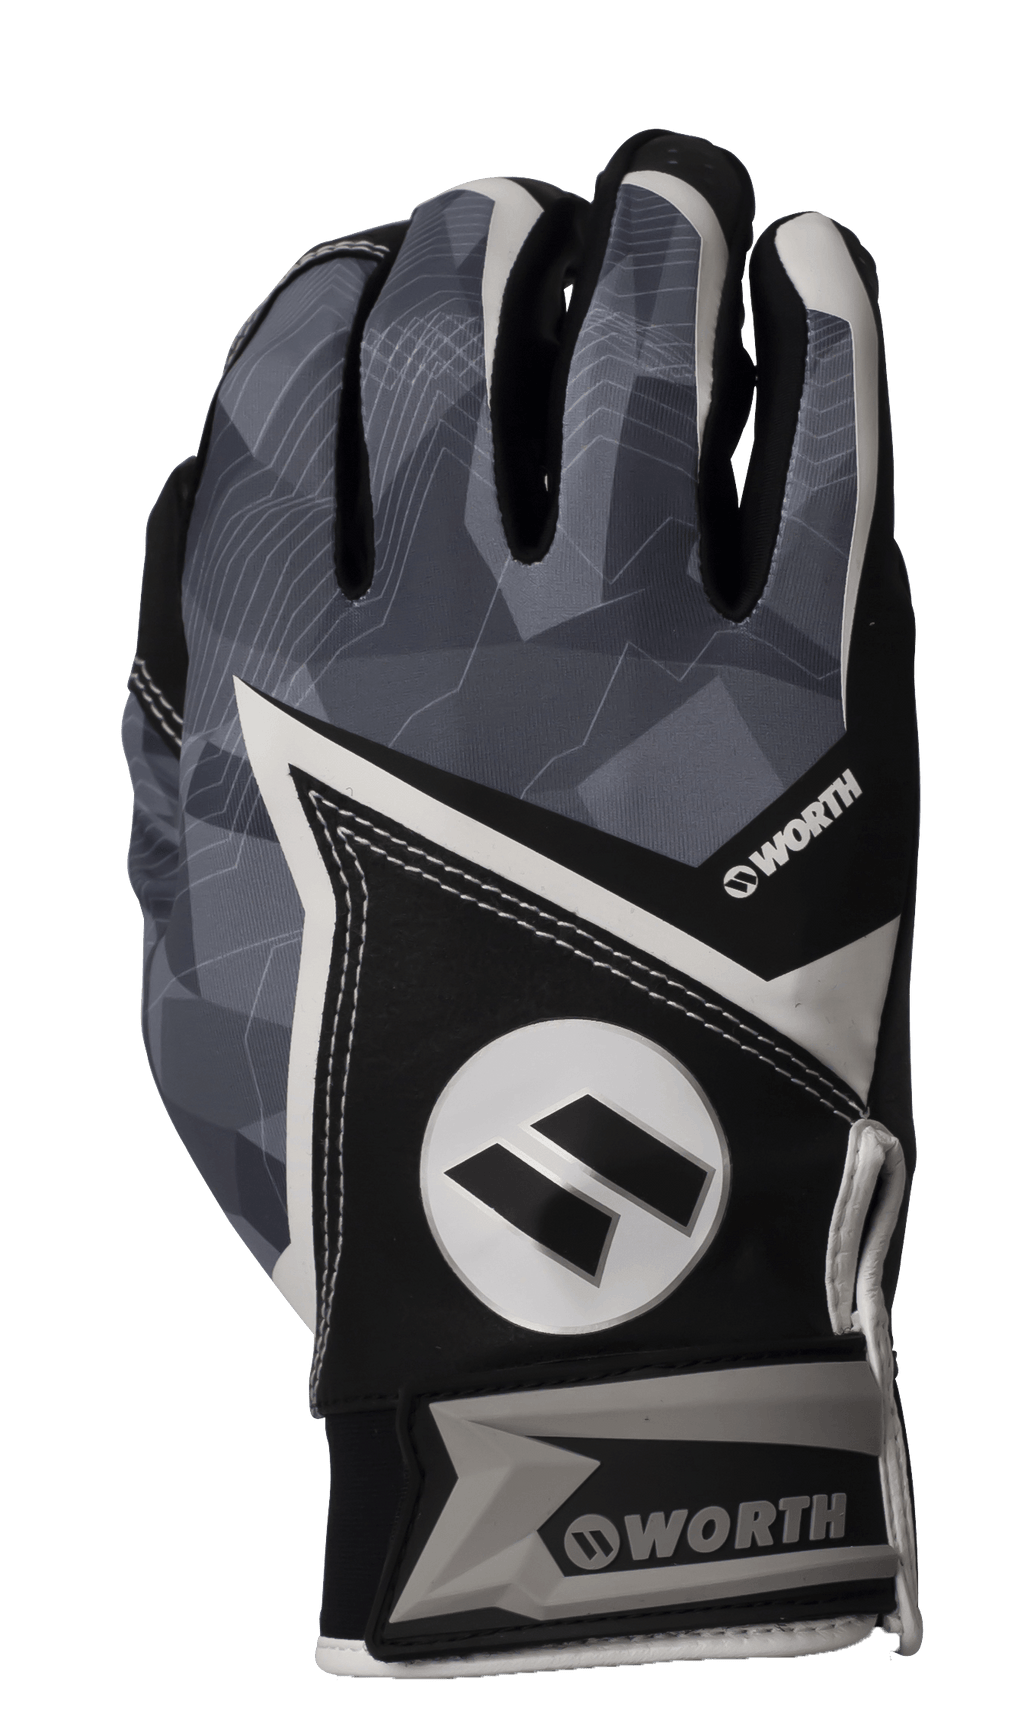 2020 Black Worth Batting Gloves: WBGL20-BLK